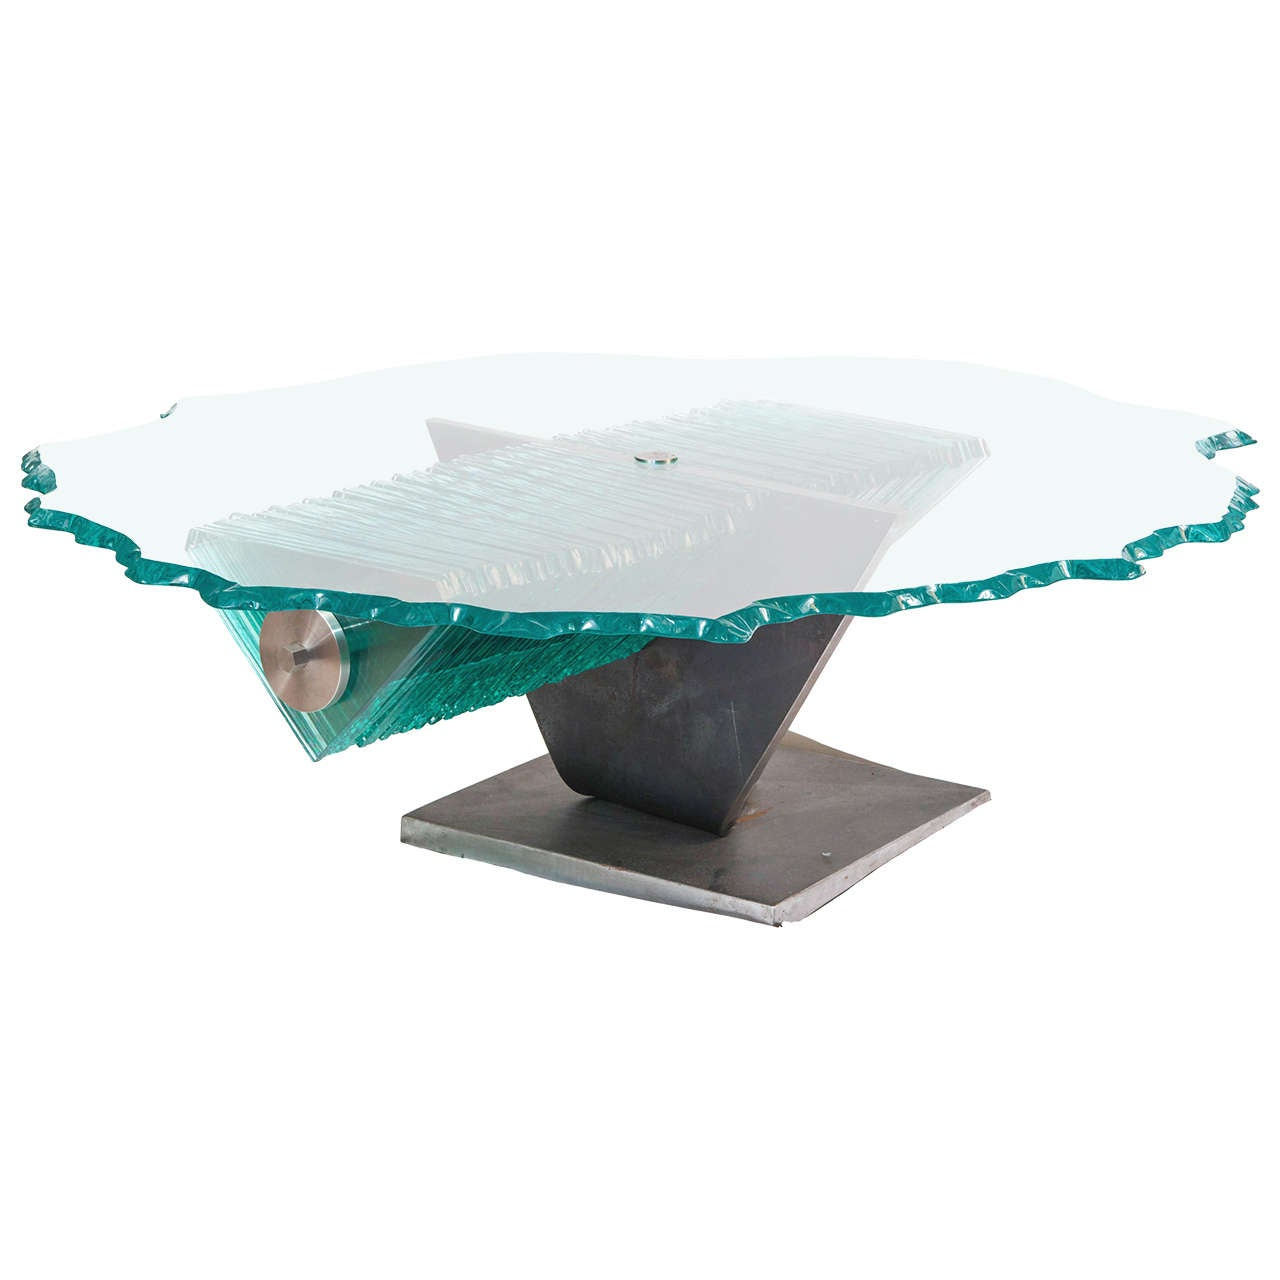 The best glass coffee tables in the world The best glass coffee tables in the world The best glass coffee tables in the world X